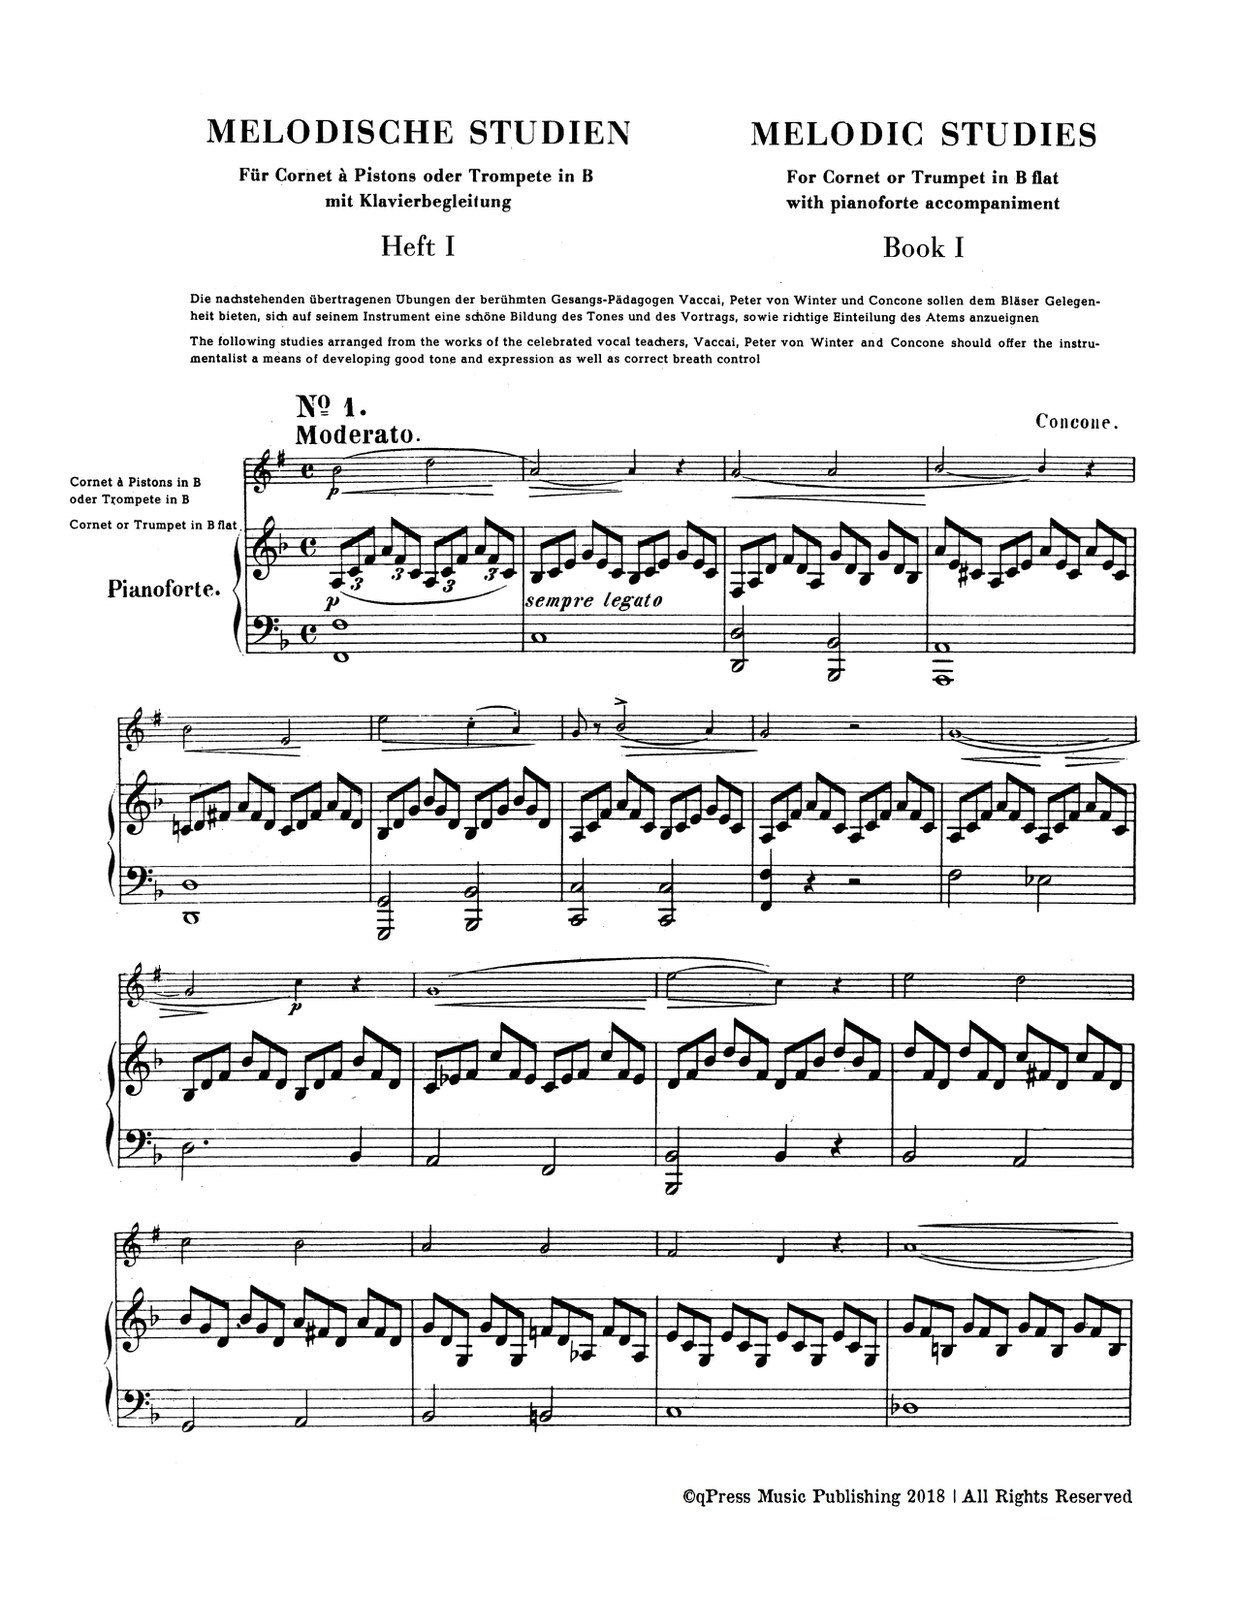 Hoffmann, Melodic Studies for Trumpet & Piano (Part and Score)-p16